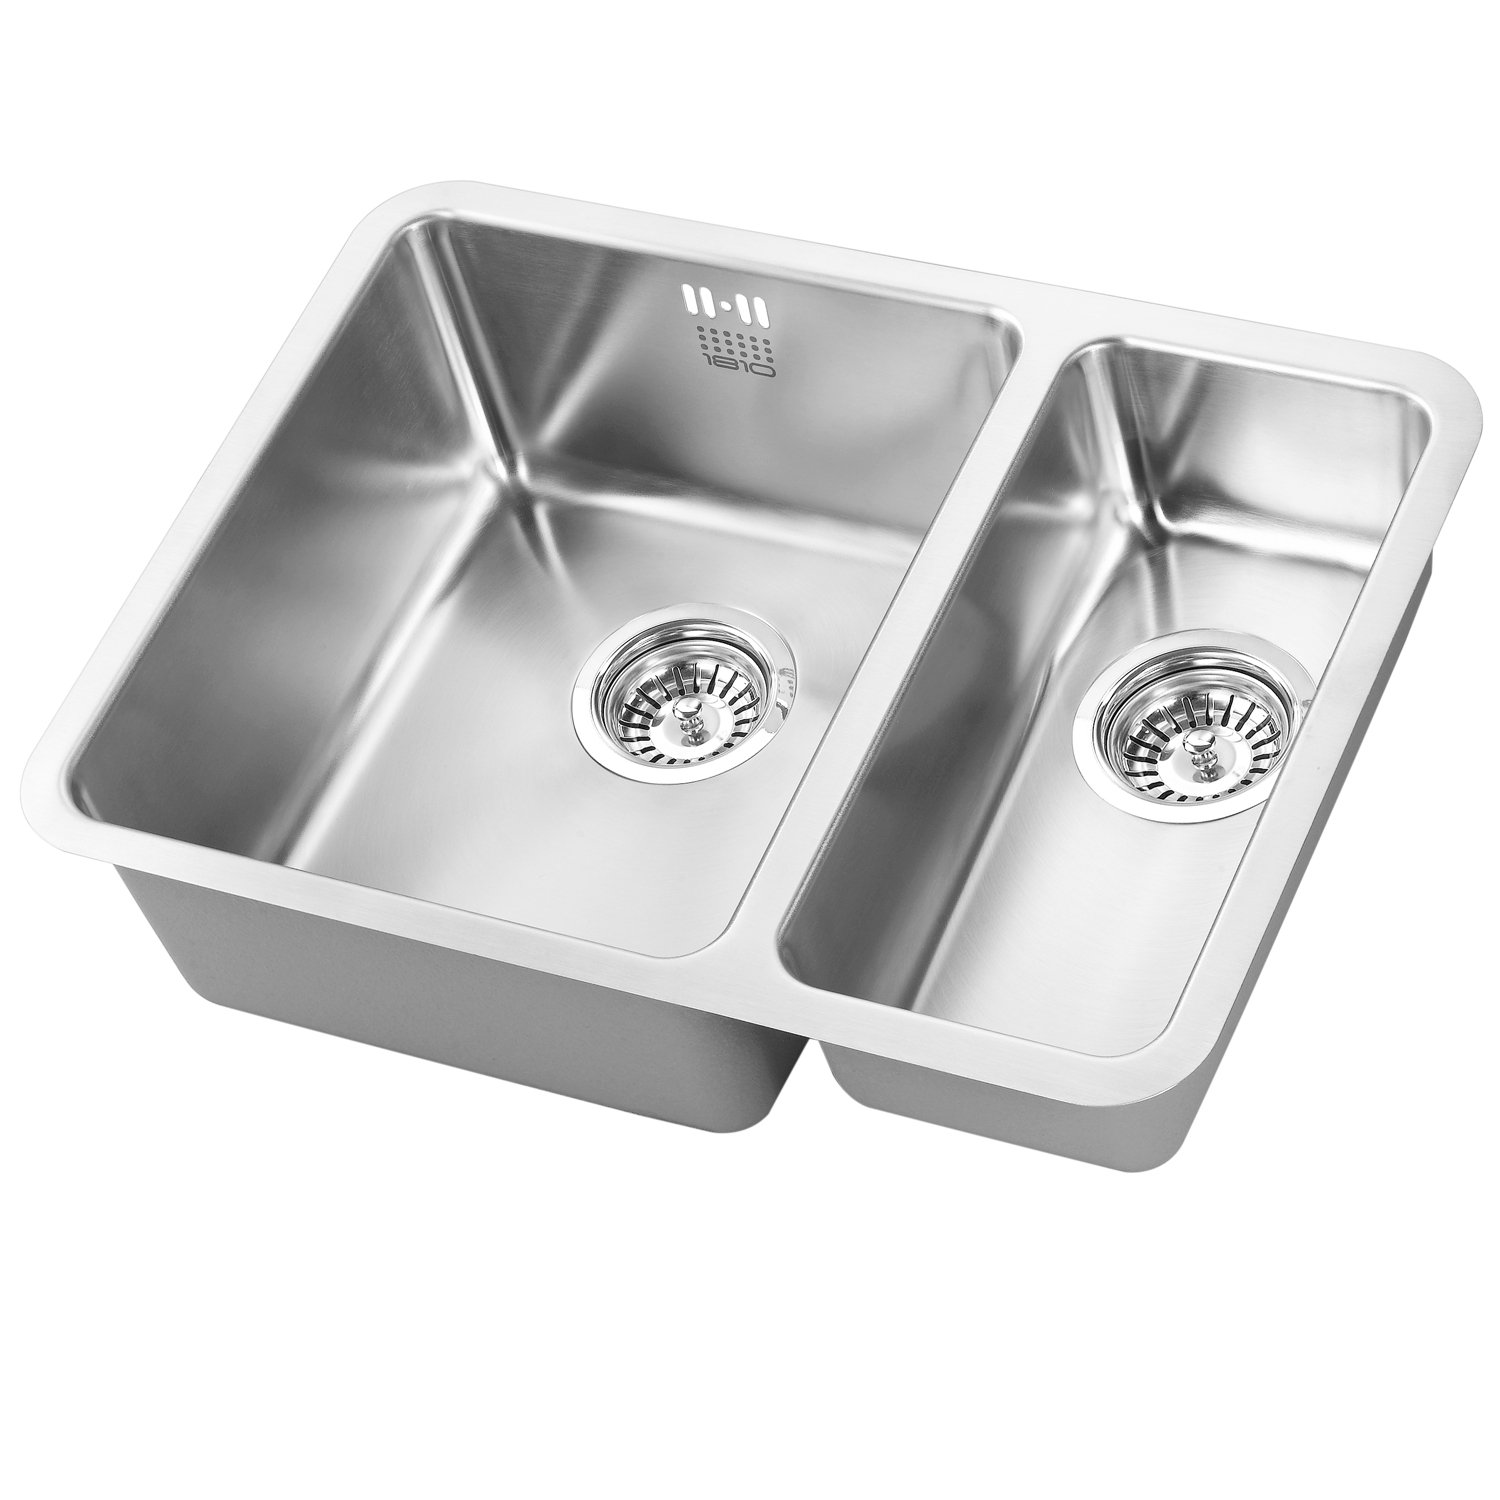 The 1810 Company Luxsoduo25 340/180U 1.5 Bowl Kitchen Sink - Left Handed-0